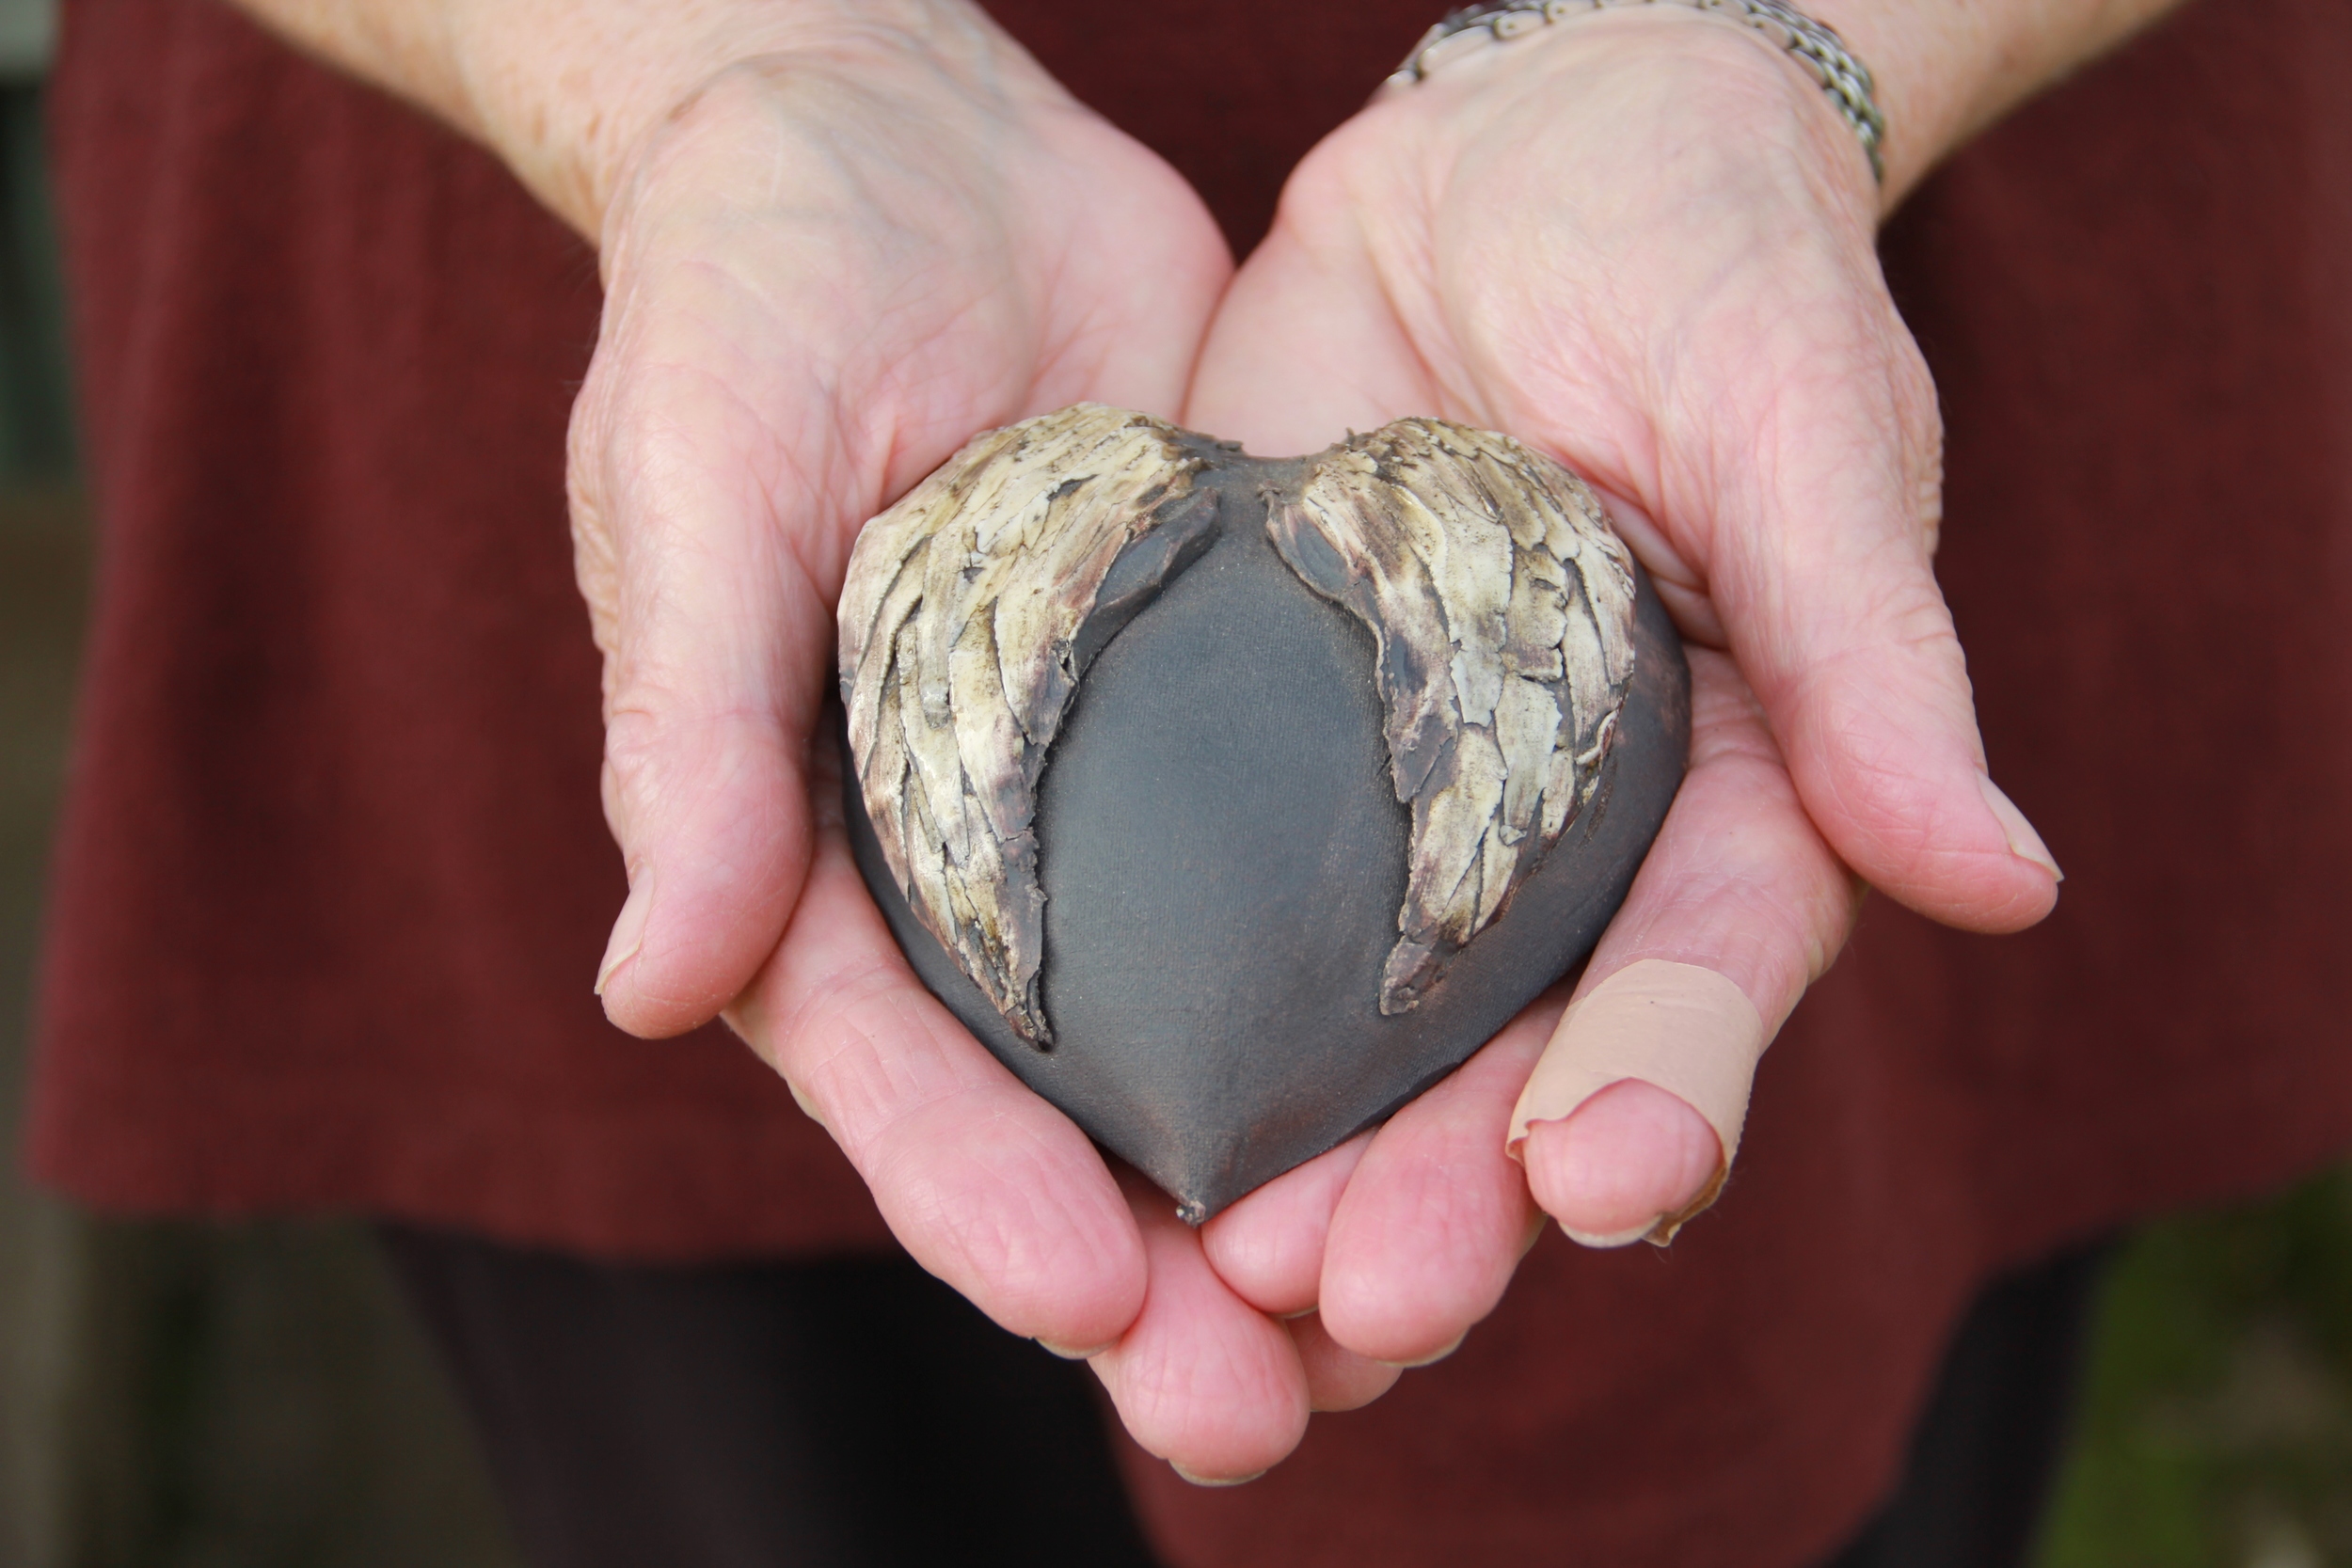 1-10-13 Hearts and hands.JPG